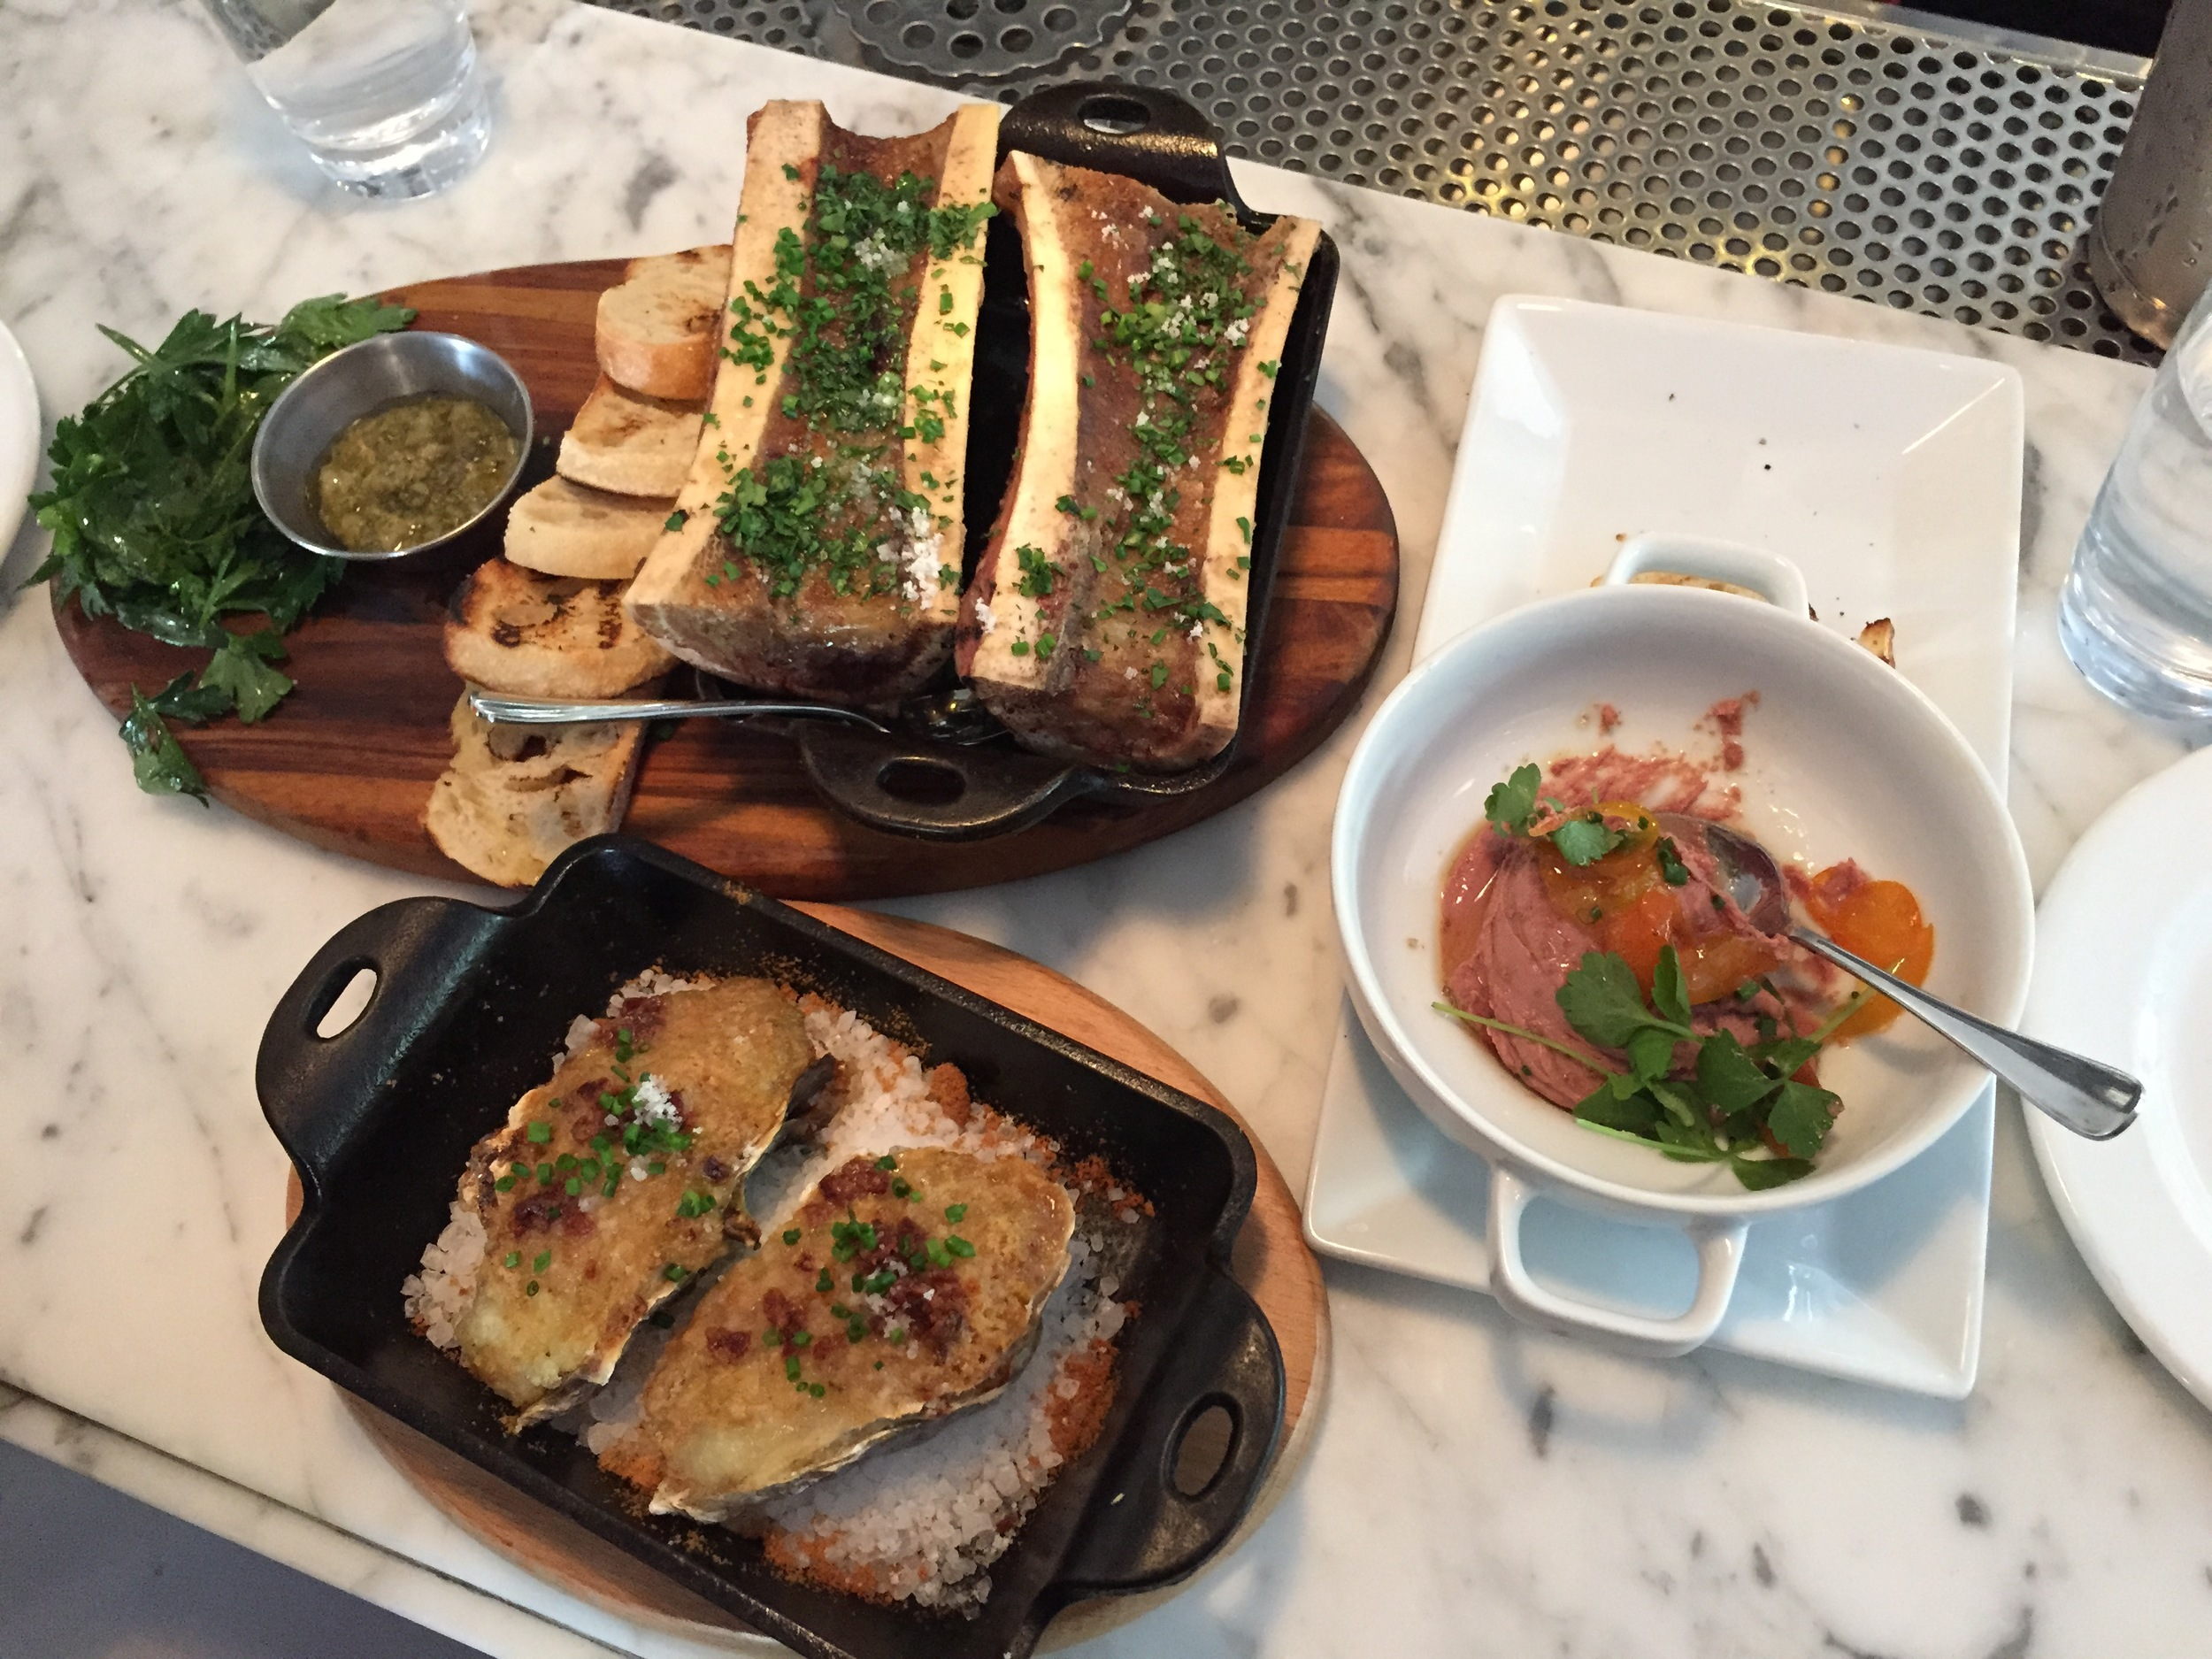 Clockwise from upper left: roasted bone marrow, duck liver mousse, baked oysters.